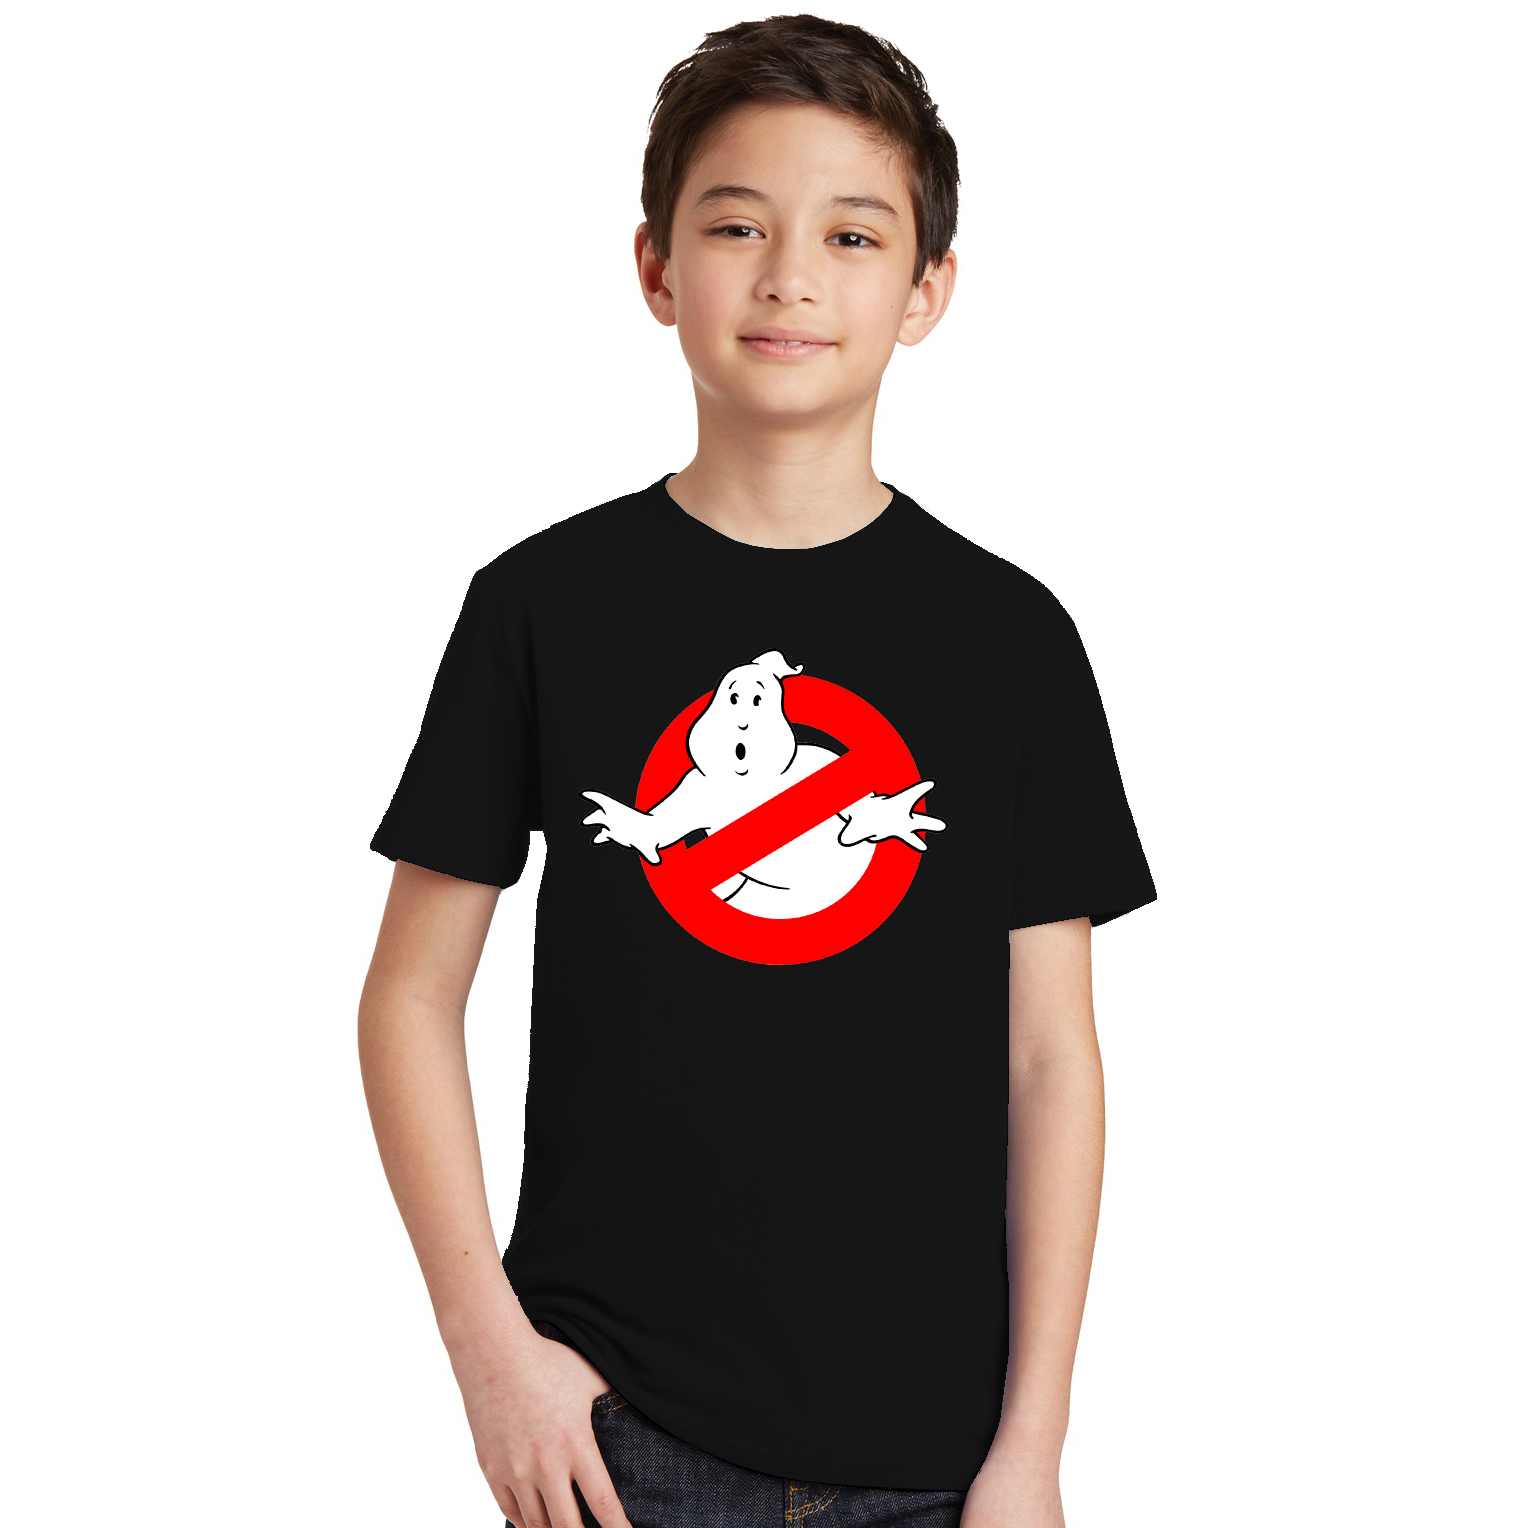 Boys Shirt Ghost Busters Orange Black Purple Green Yellow Pink Blue Red 3-10Y 8colors